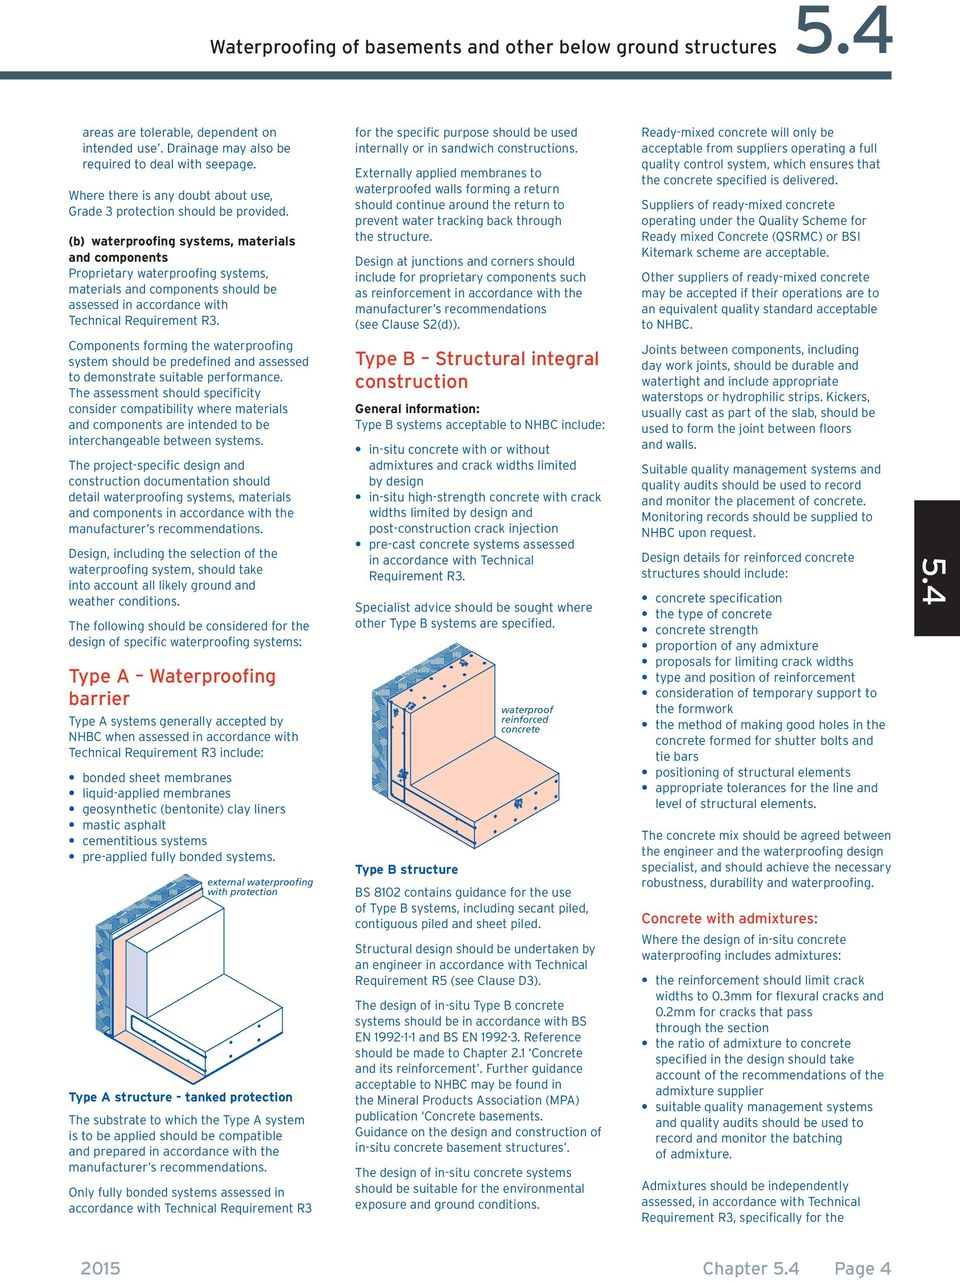 Chapter 5 4  Waterproofing of basements and other below